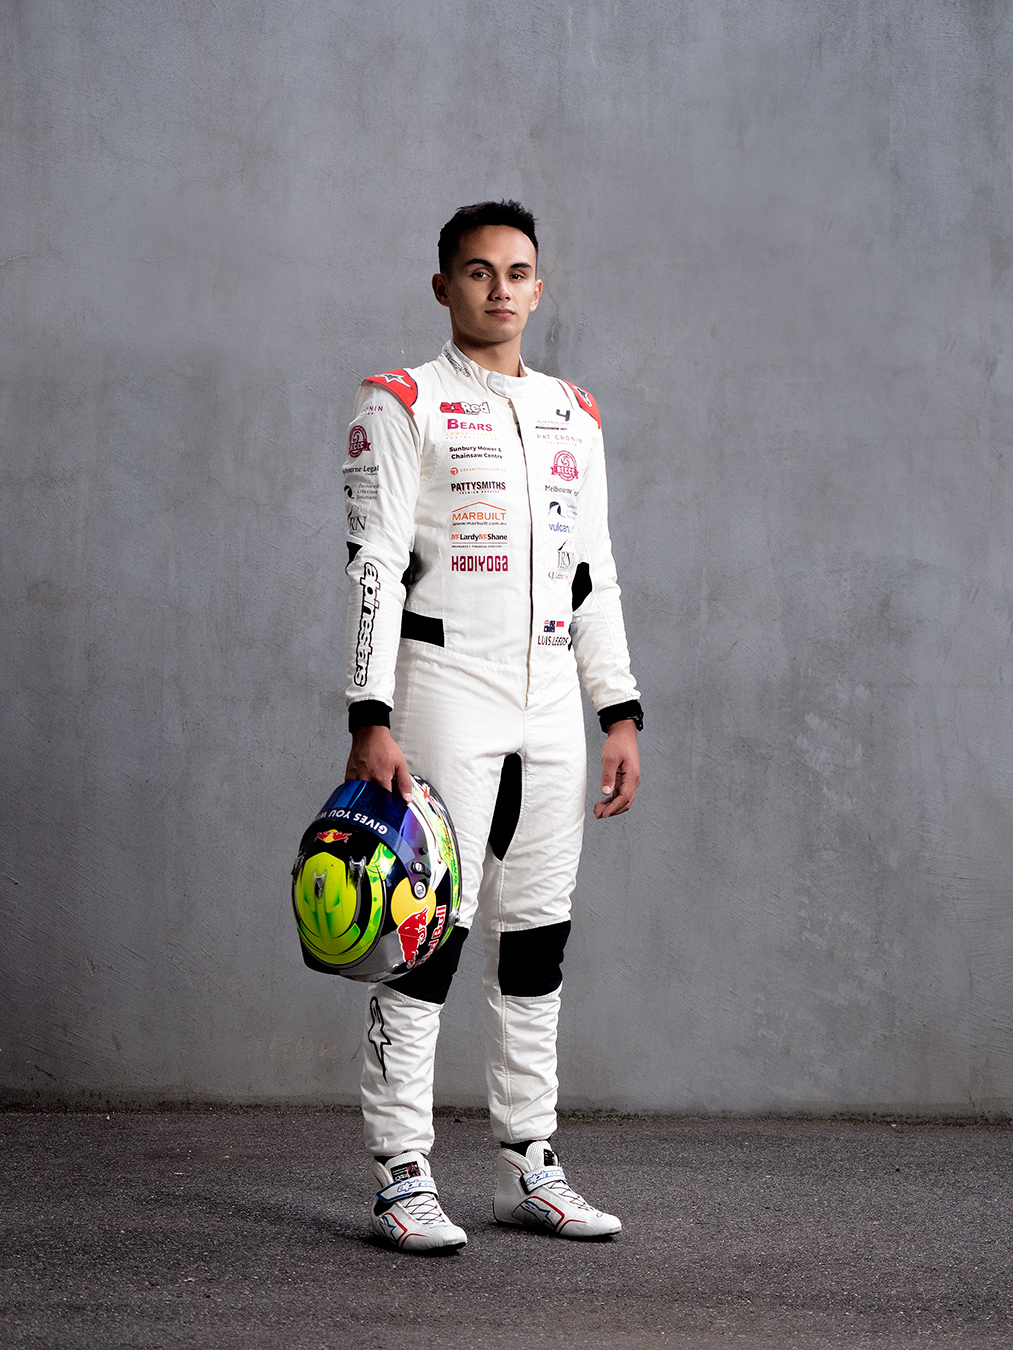 Professional formula one driver Luis wearing his driving protective gear